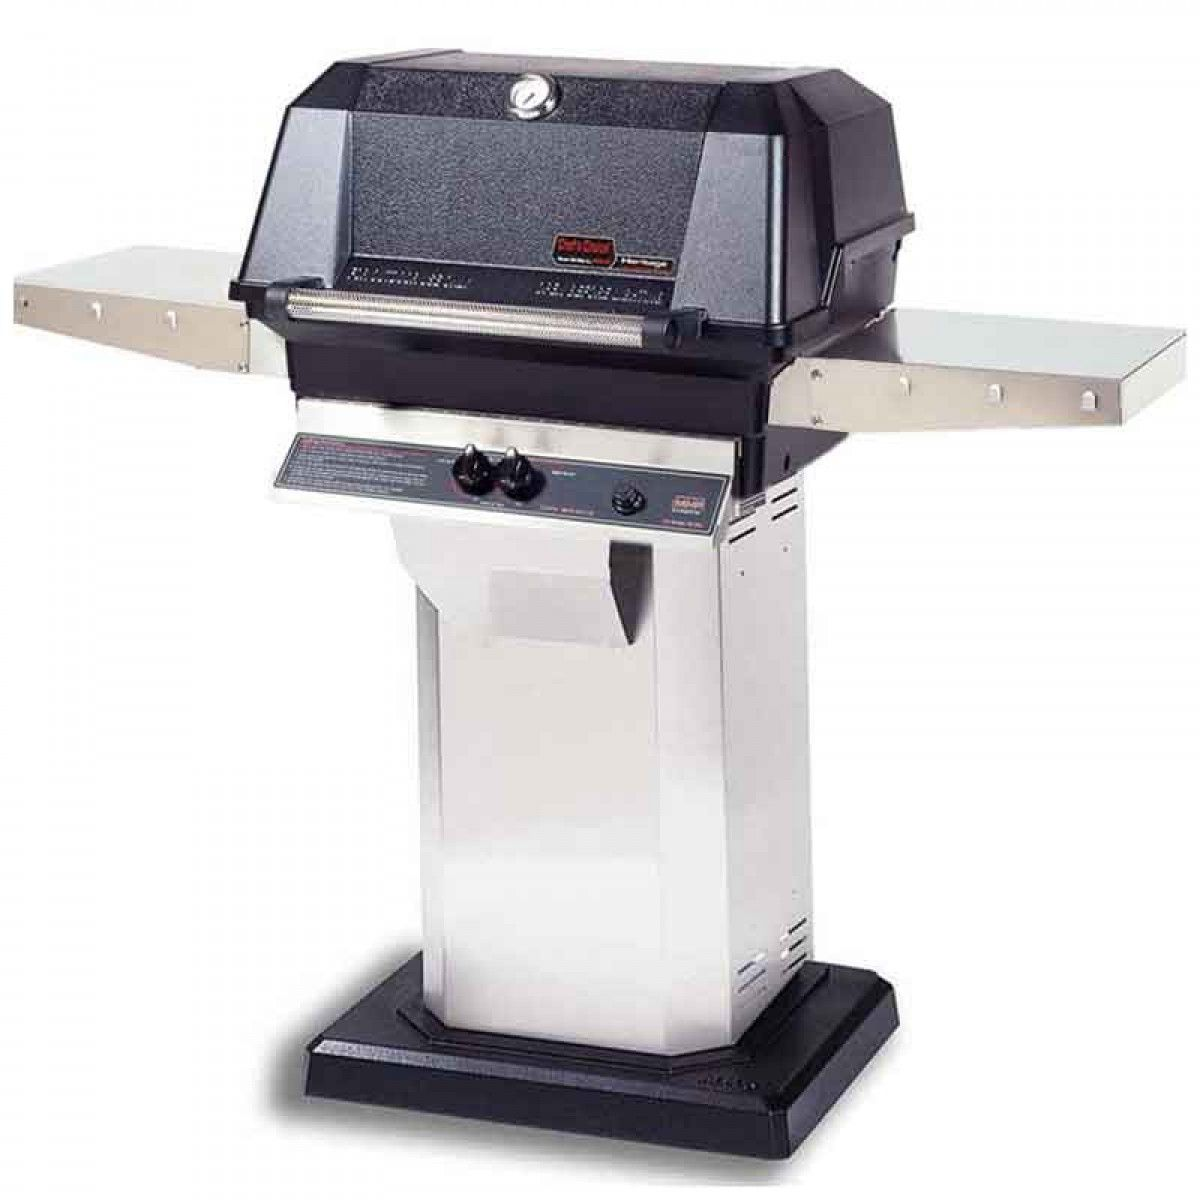 Converting a gas grill to lava rocks pros and cons of the mhp wnk4 gas grill dailygadgetfo Images